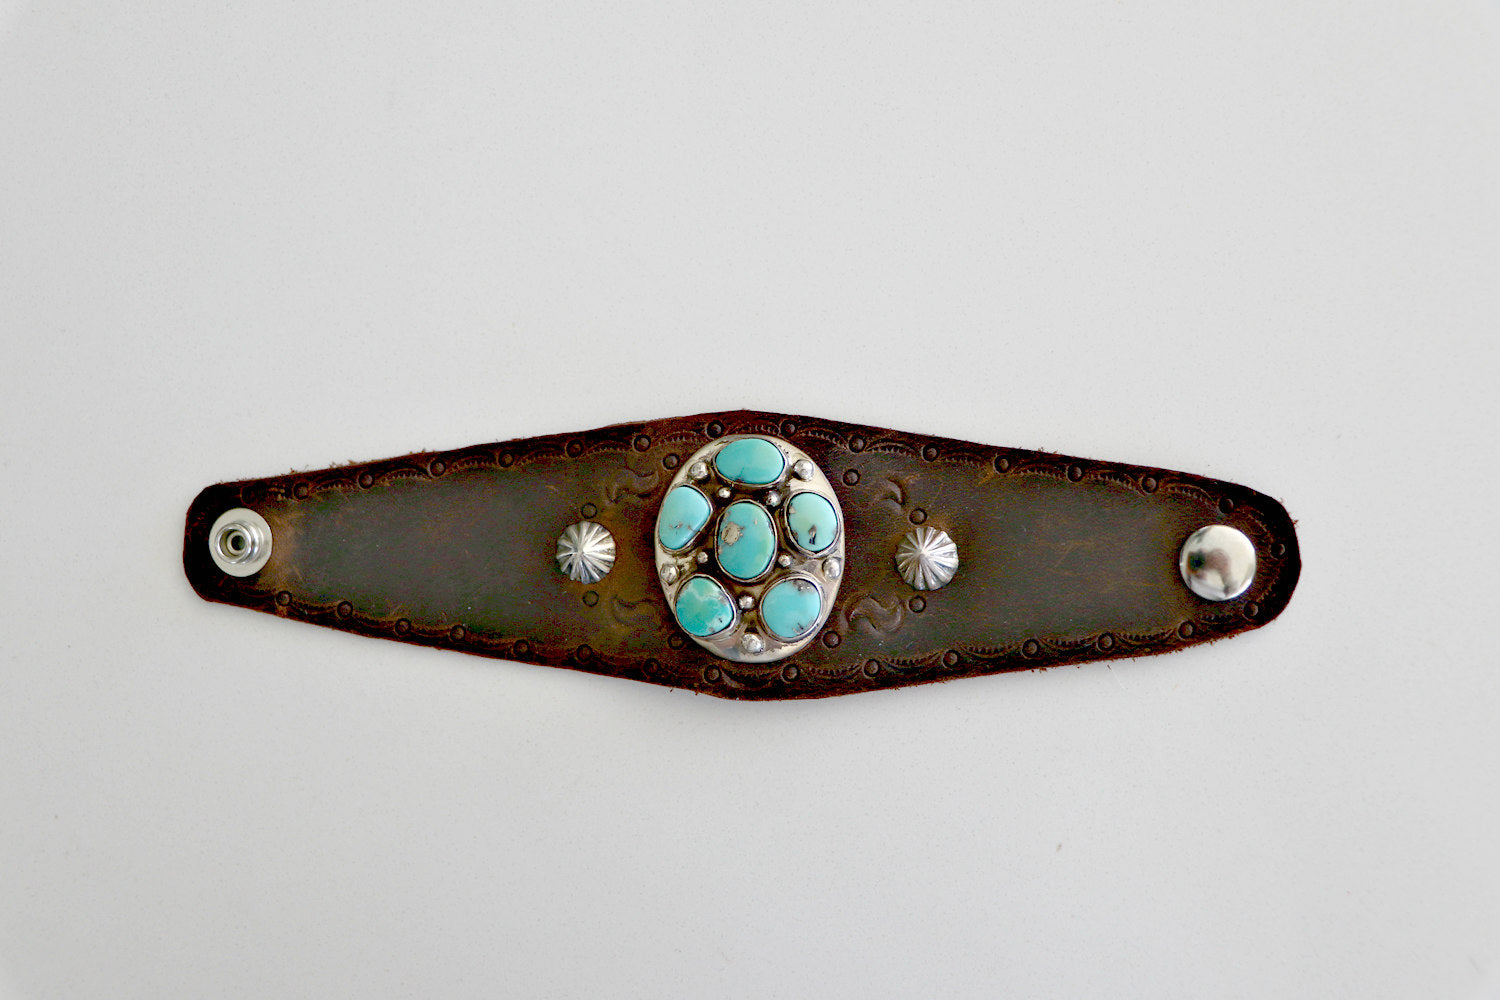 Native American Sleeping Beauty Turquoise Leather Cuff